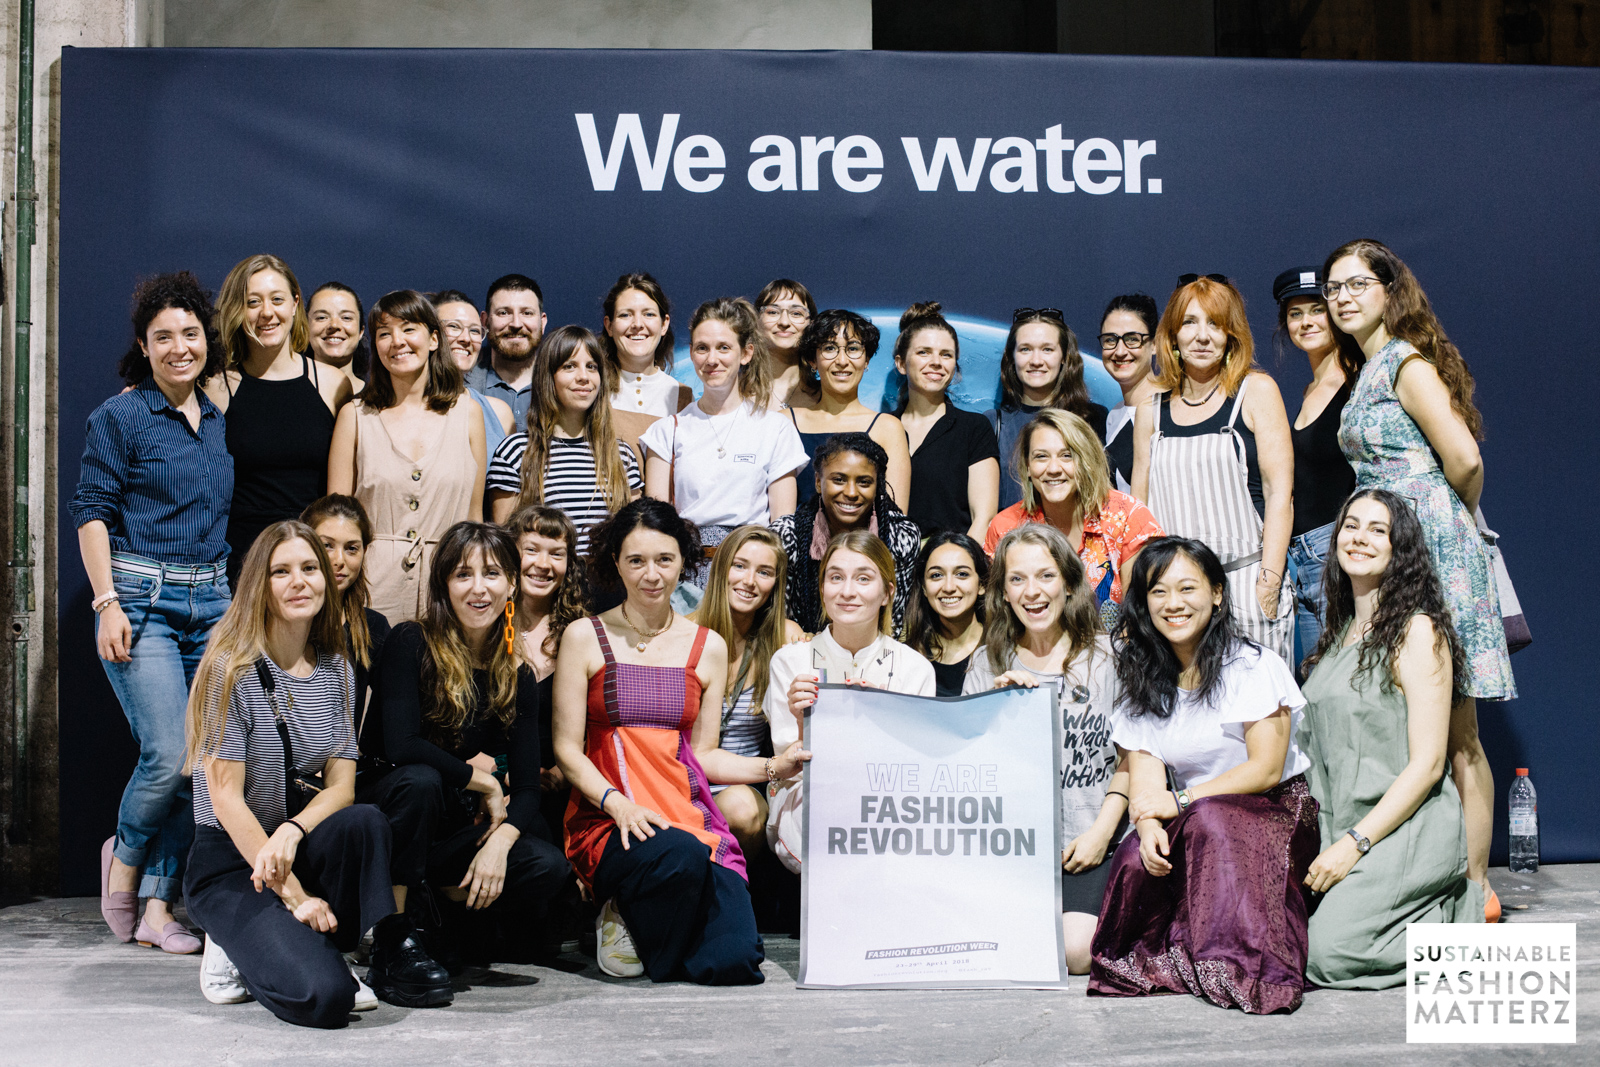 The 1st Fashion Revolution Assembly